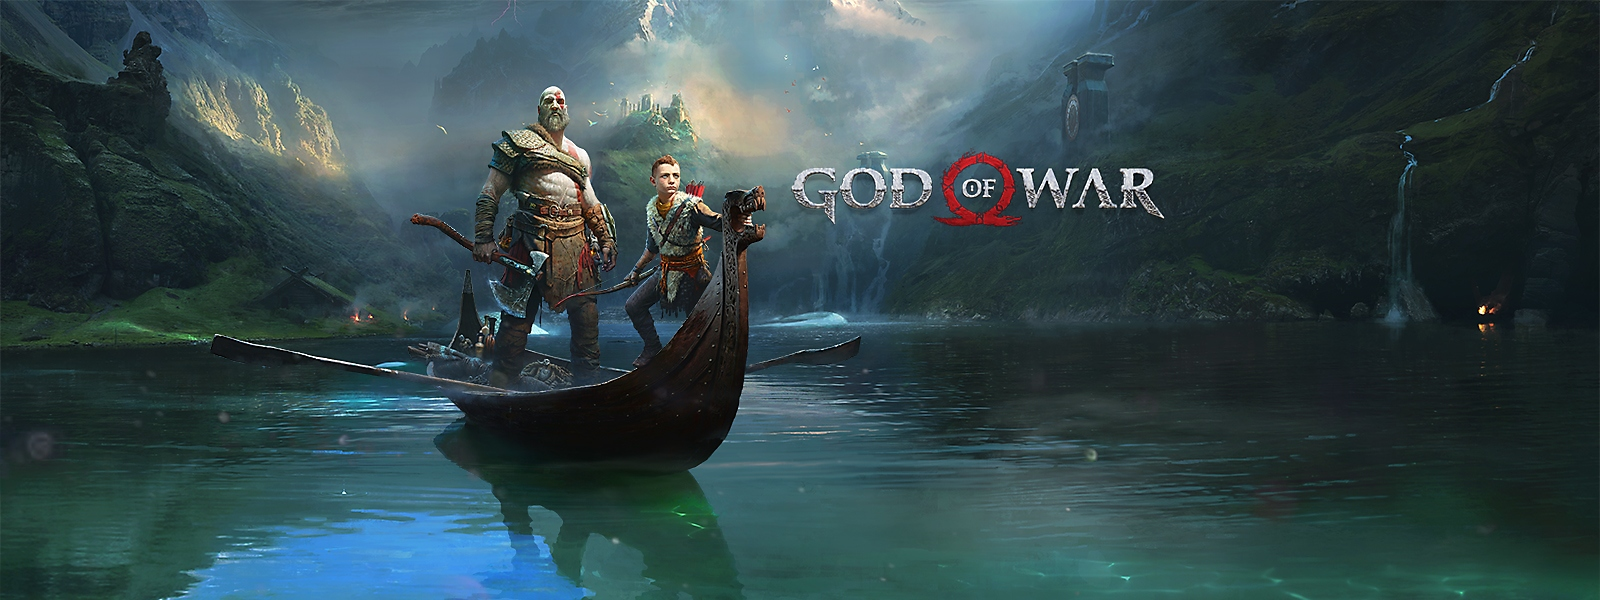 god of war hero